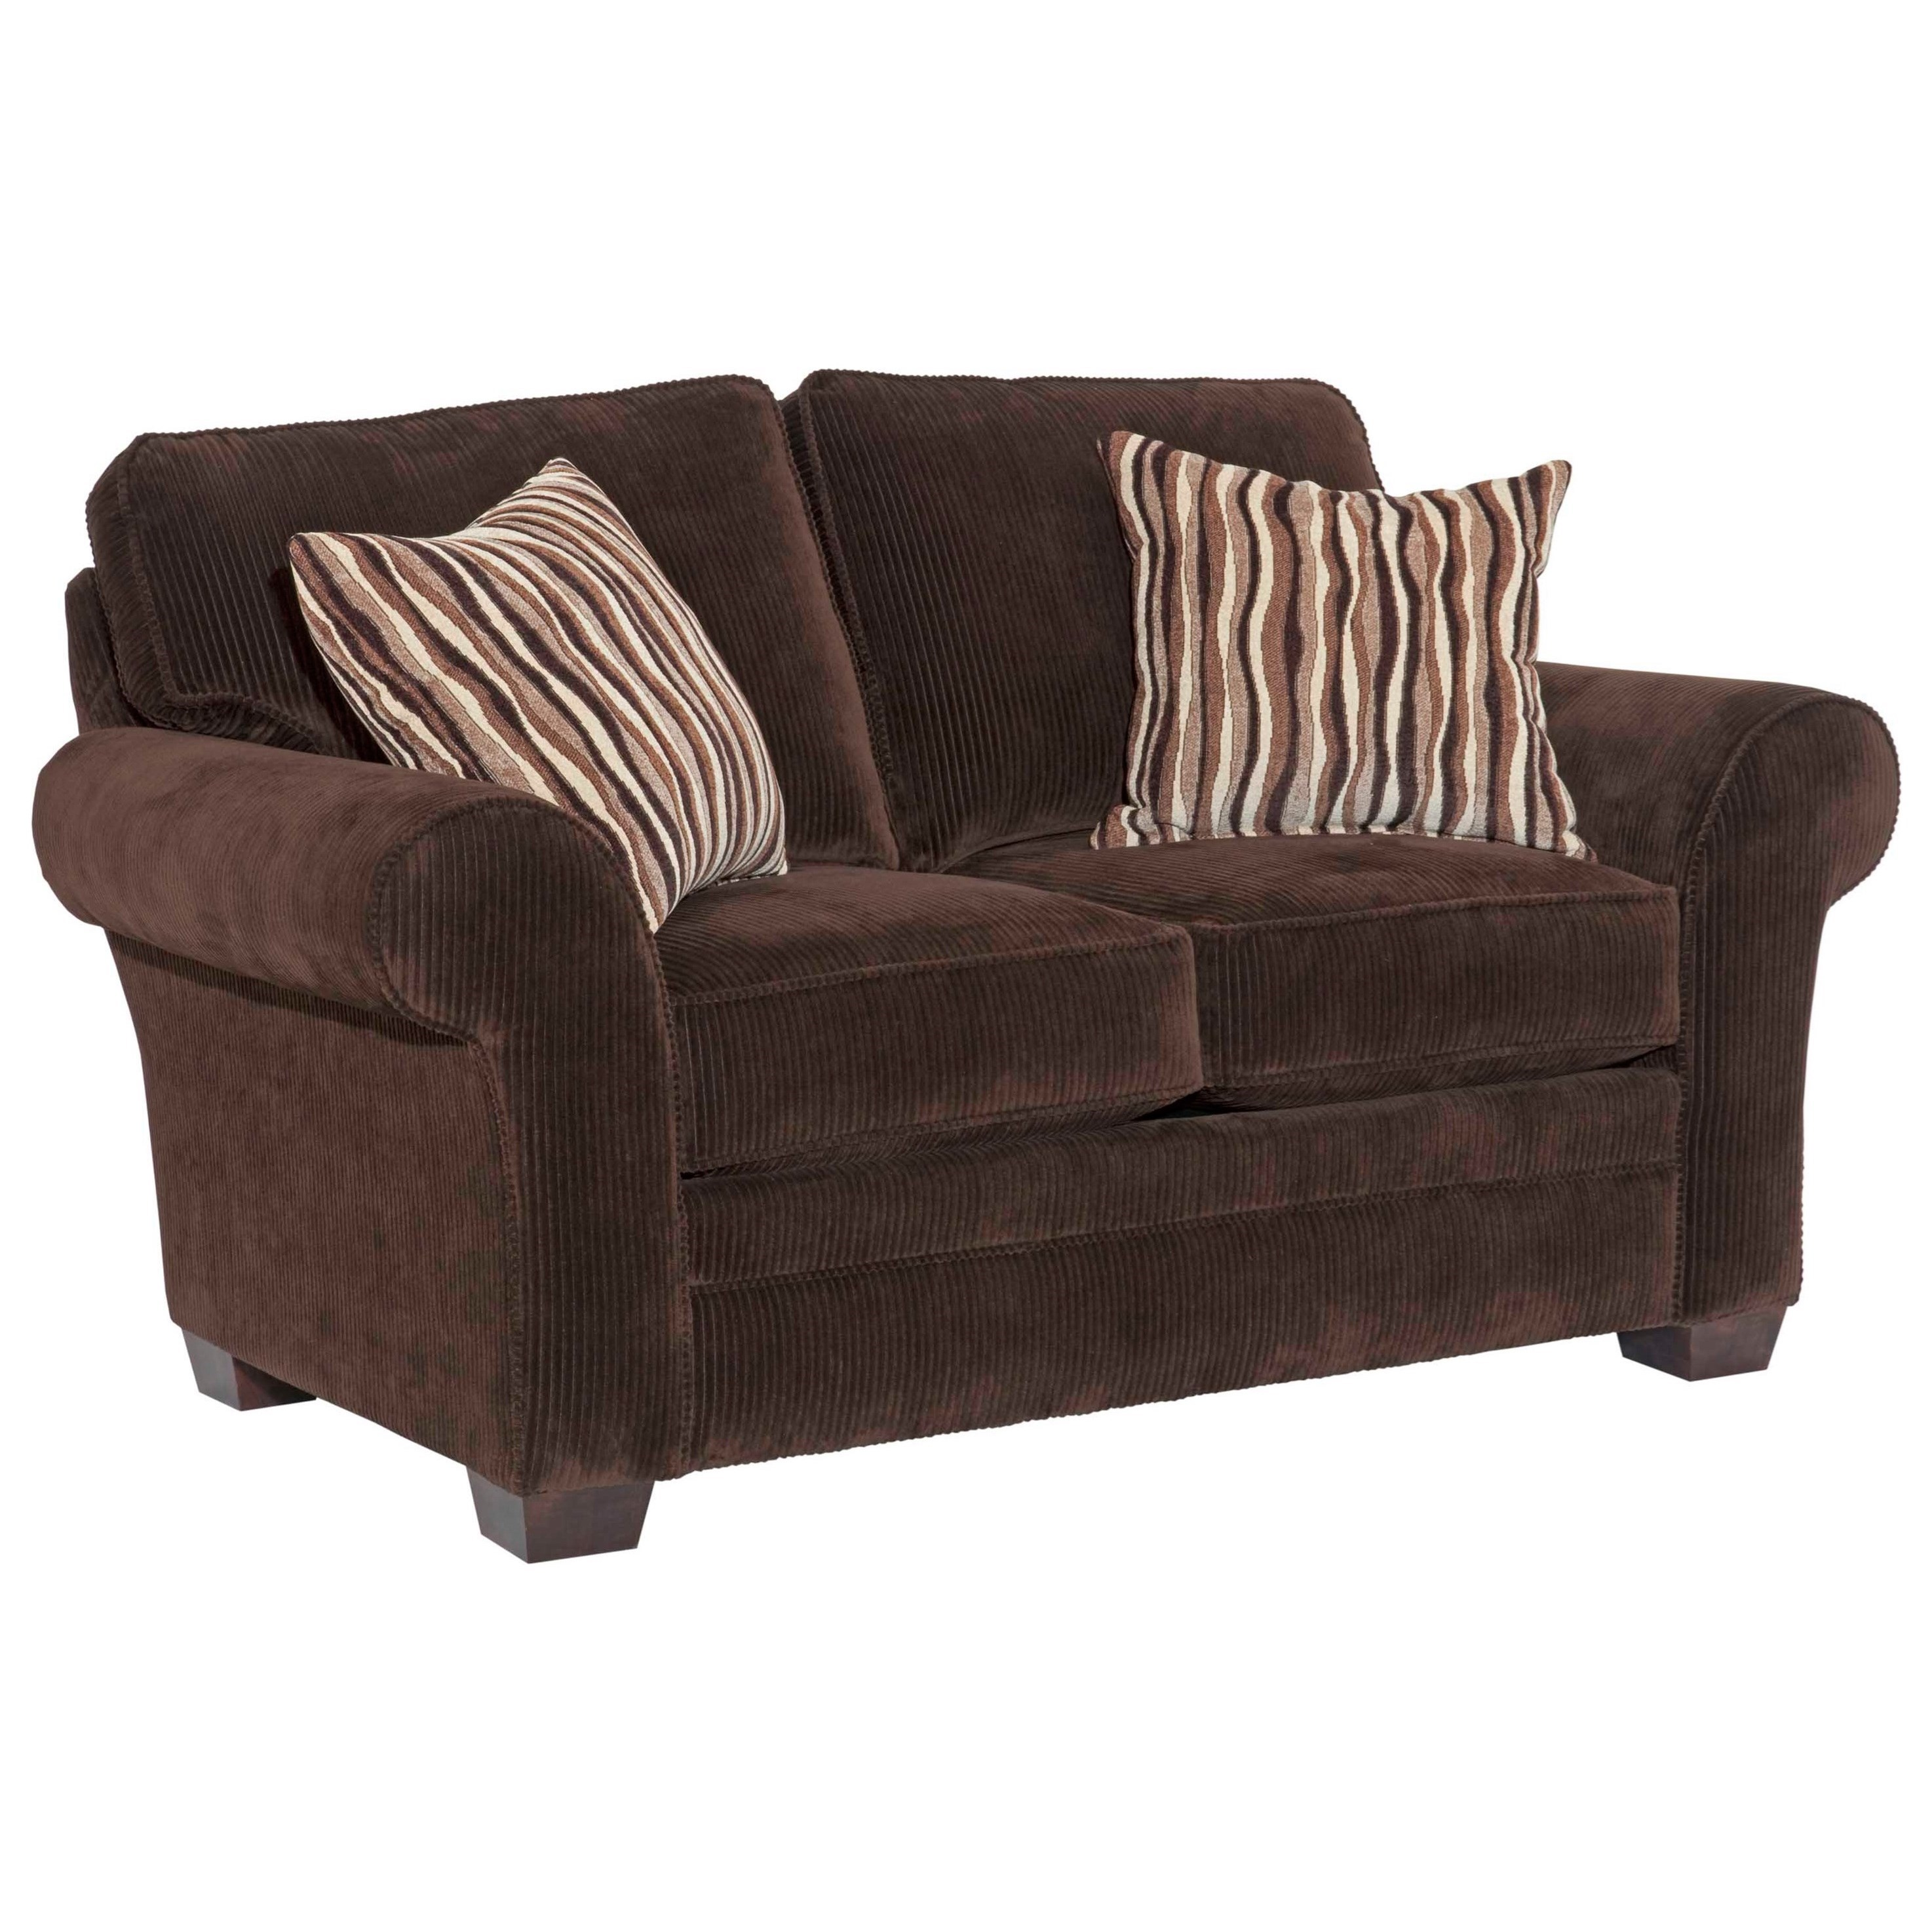 Broyhill Furniture Zachary Loveseat - Item Number: 7902-1-7973-87